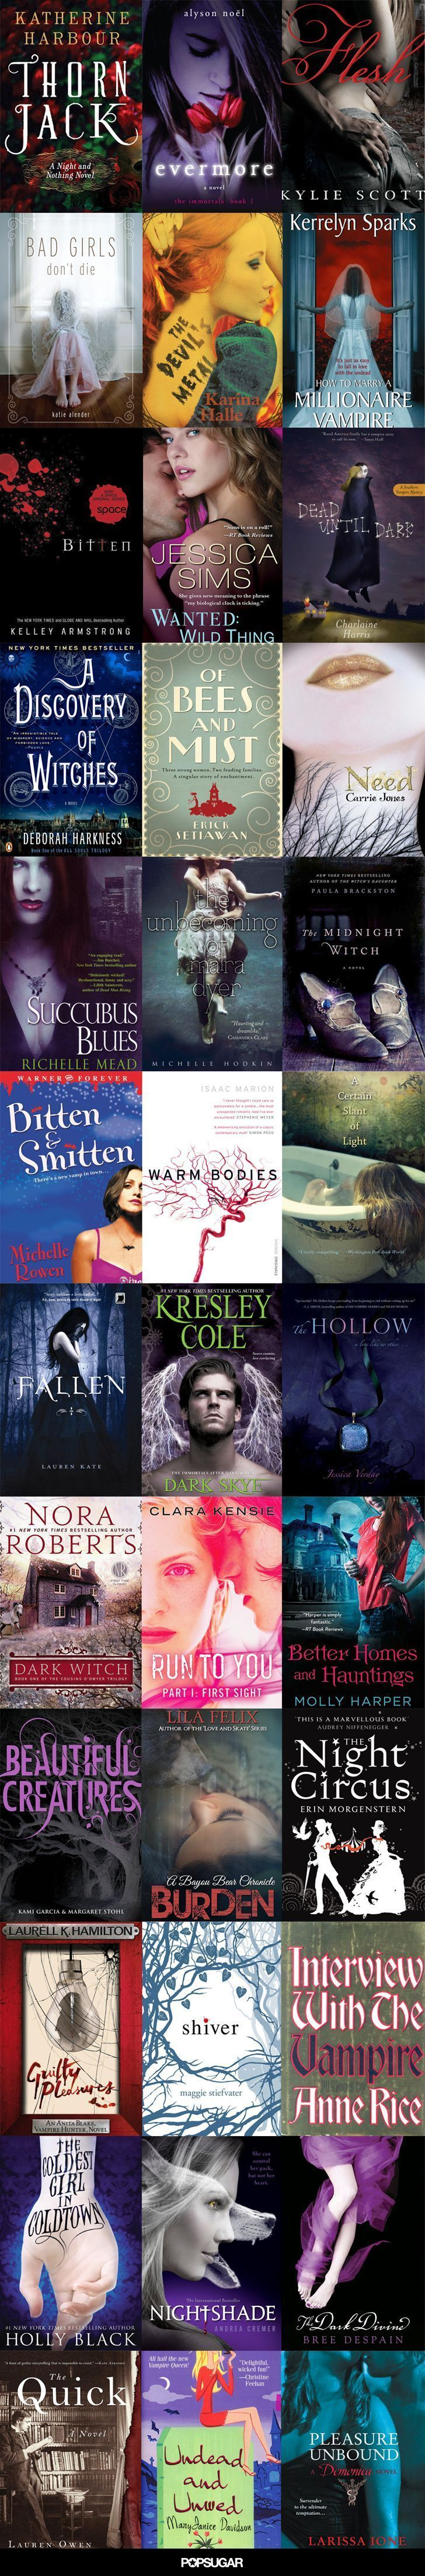 38 Paranormal Romance Books That Are Spookily Sexyi Can Attest For Fallen